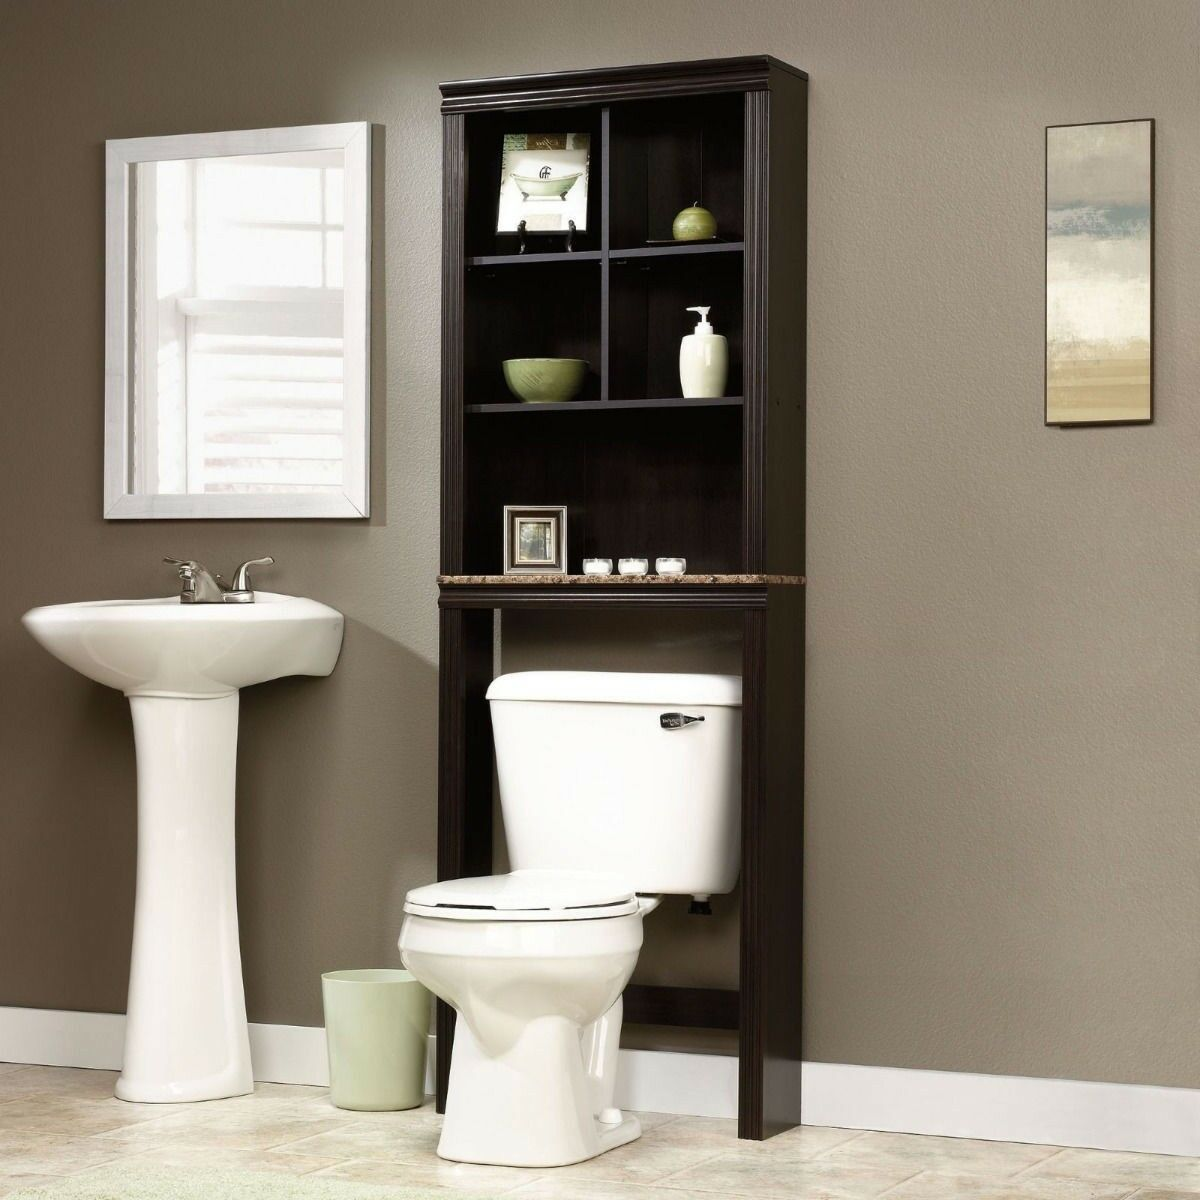 over the toilet cabinet bathroom cabinet toilet shelf space saver storage 13230